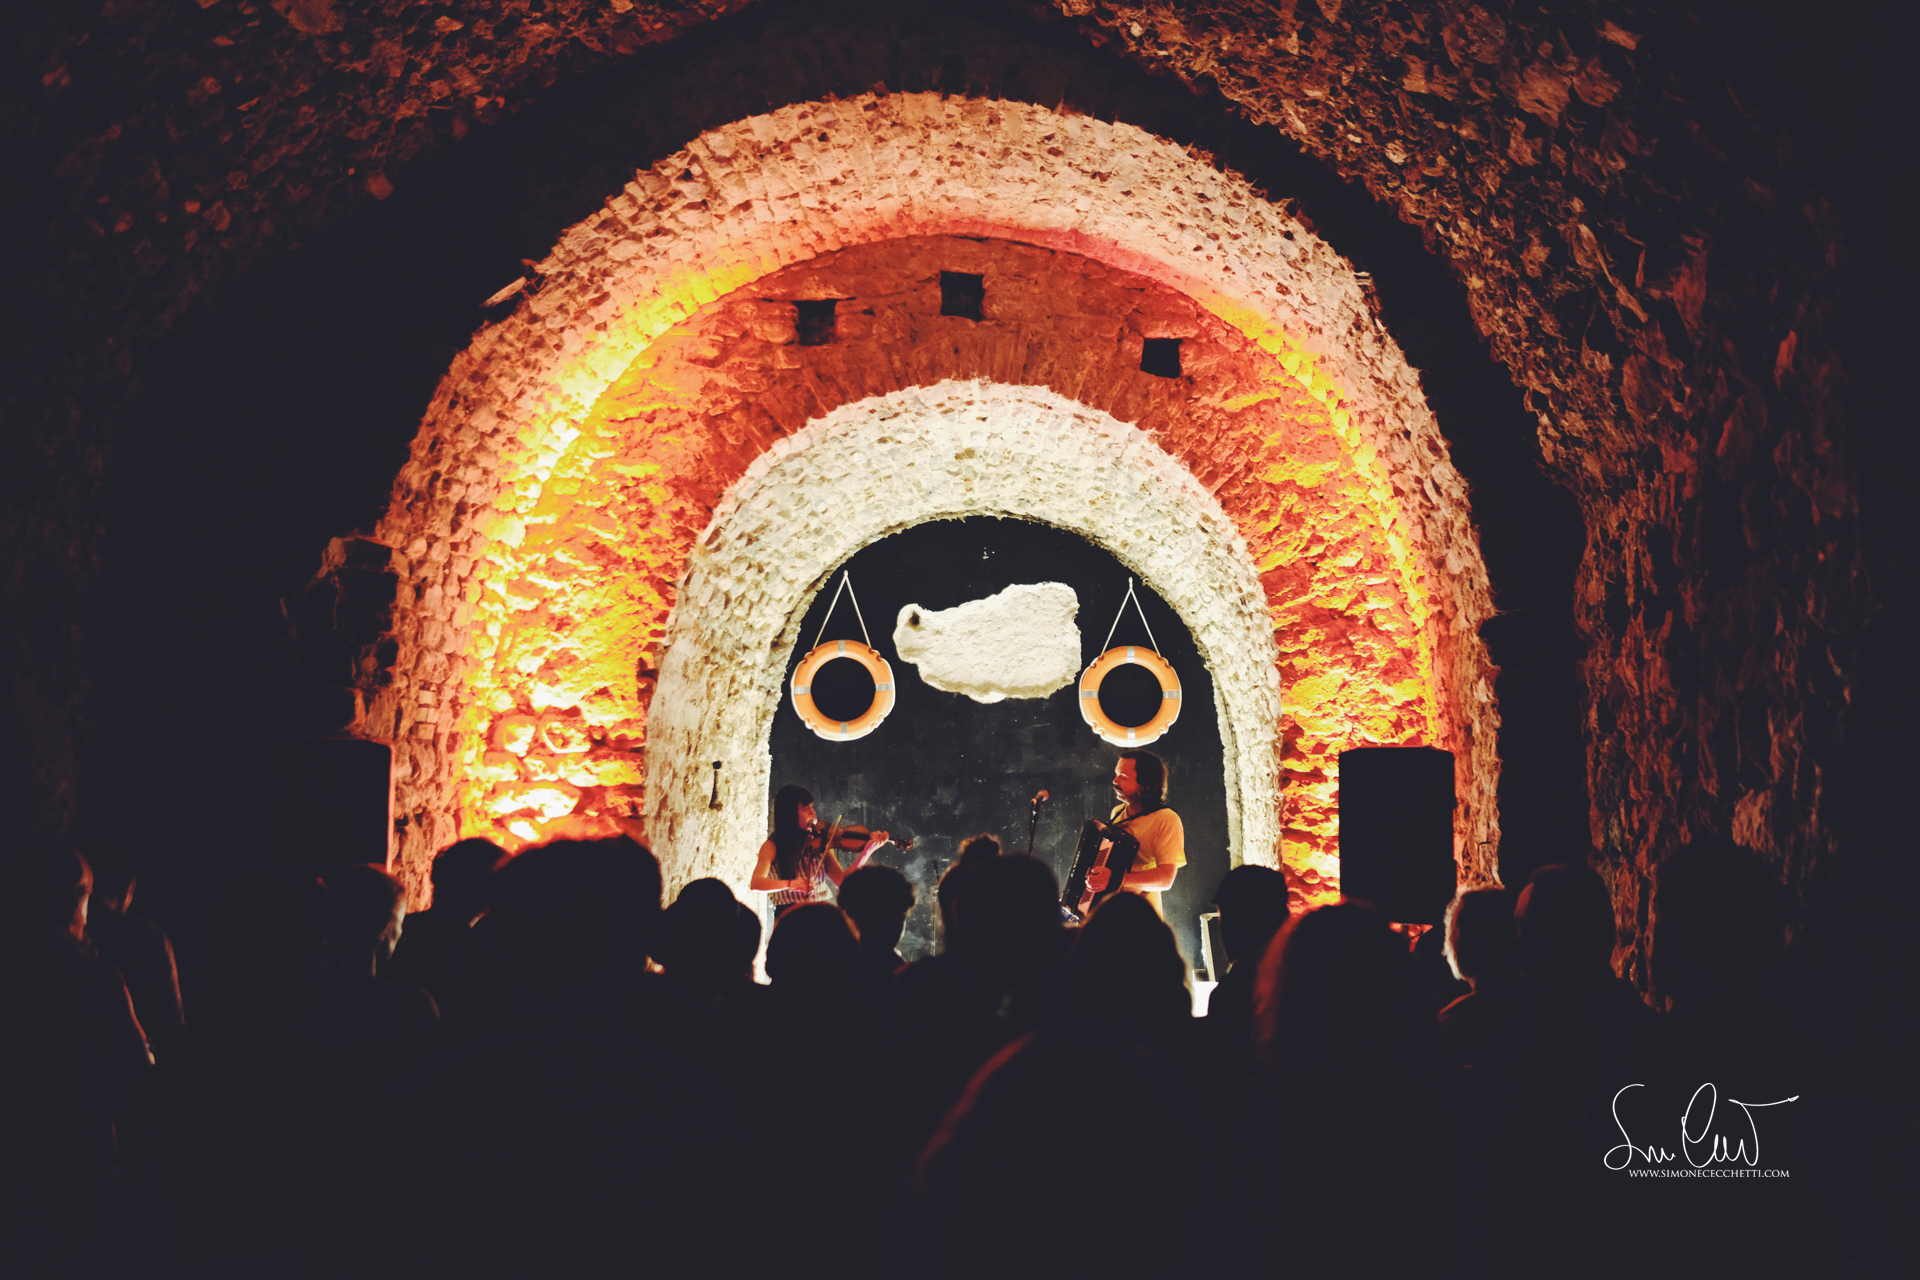 Hack and The Hacksaw in The Grotto. Foto di Simone Cecchetti